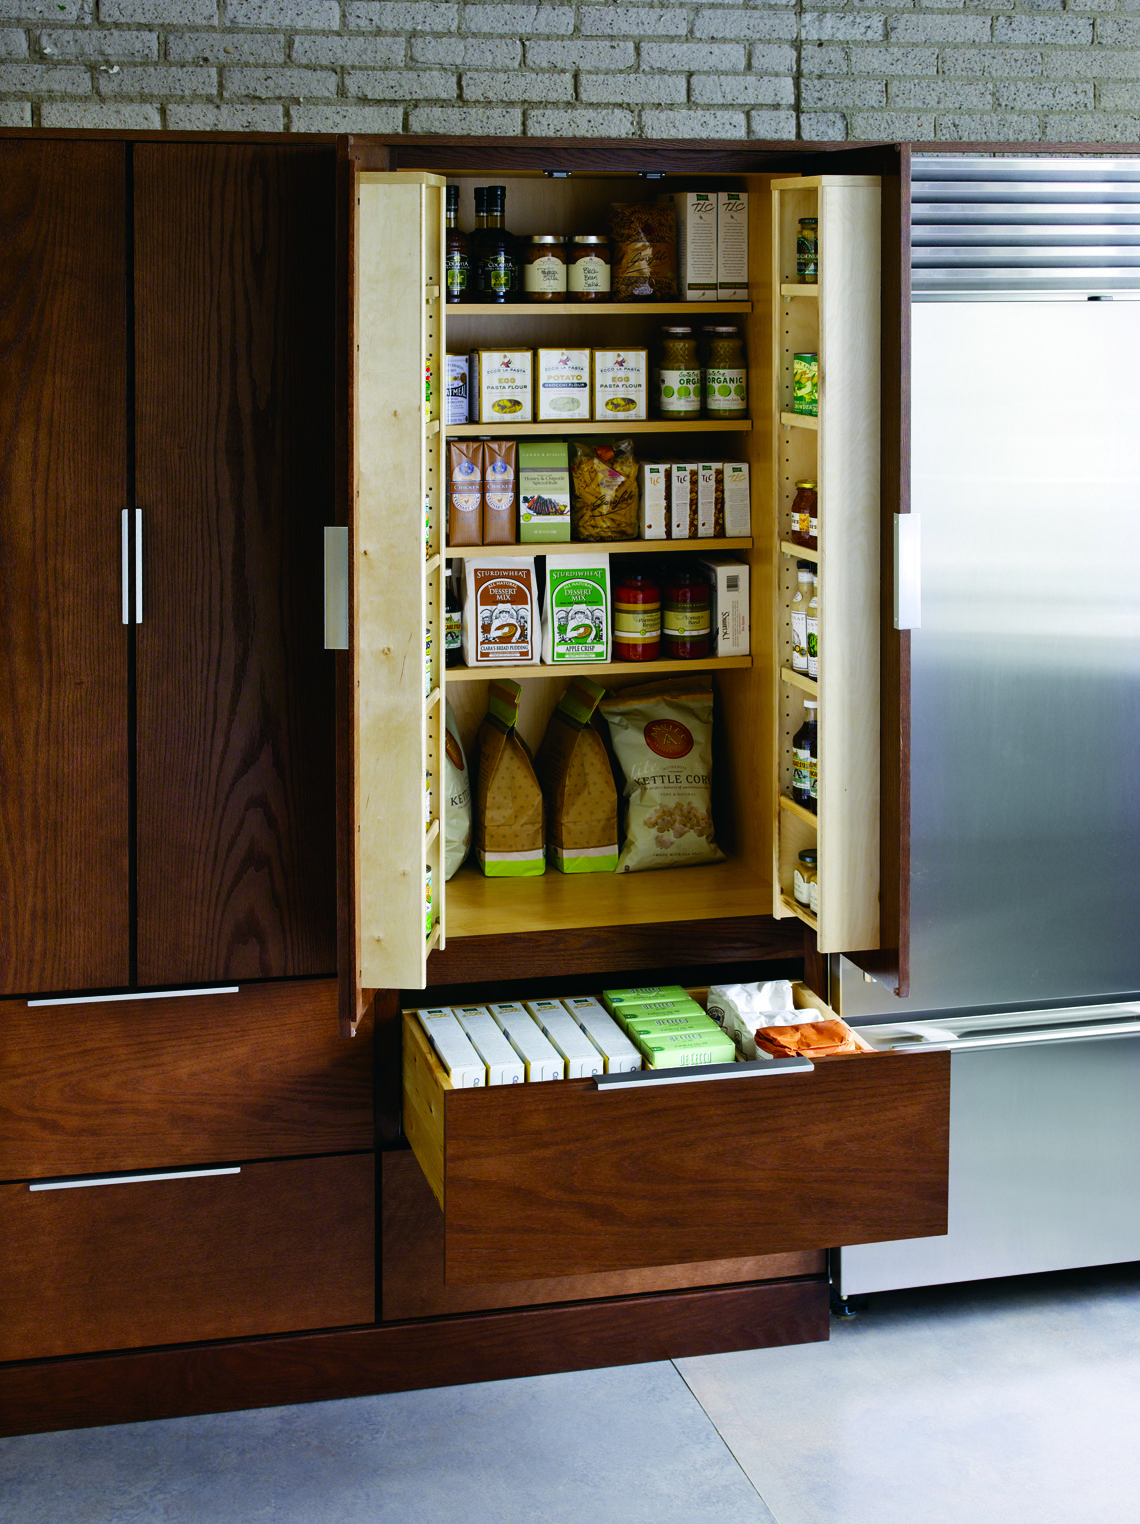 There's always space to add a pantry!